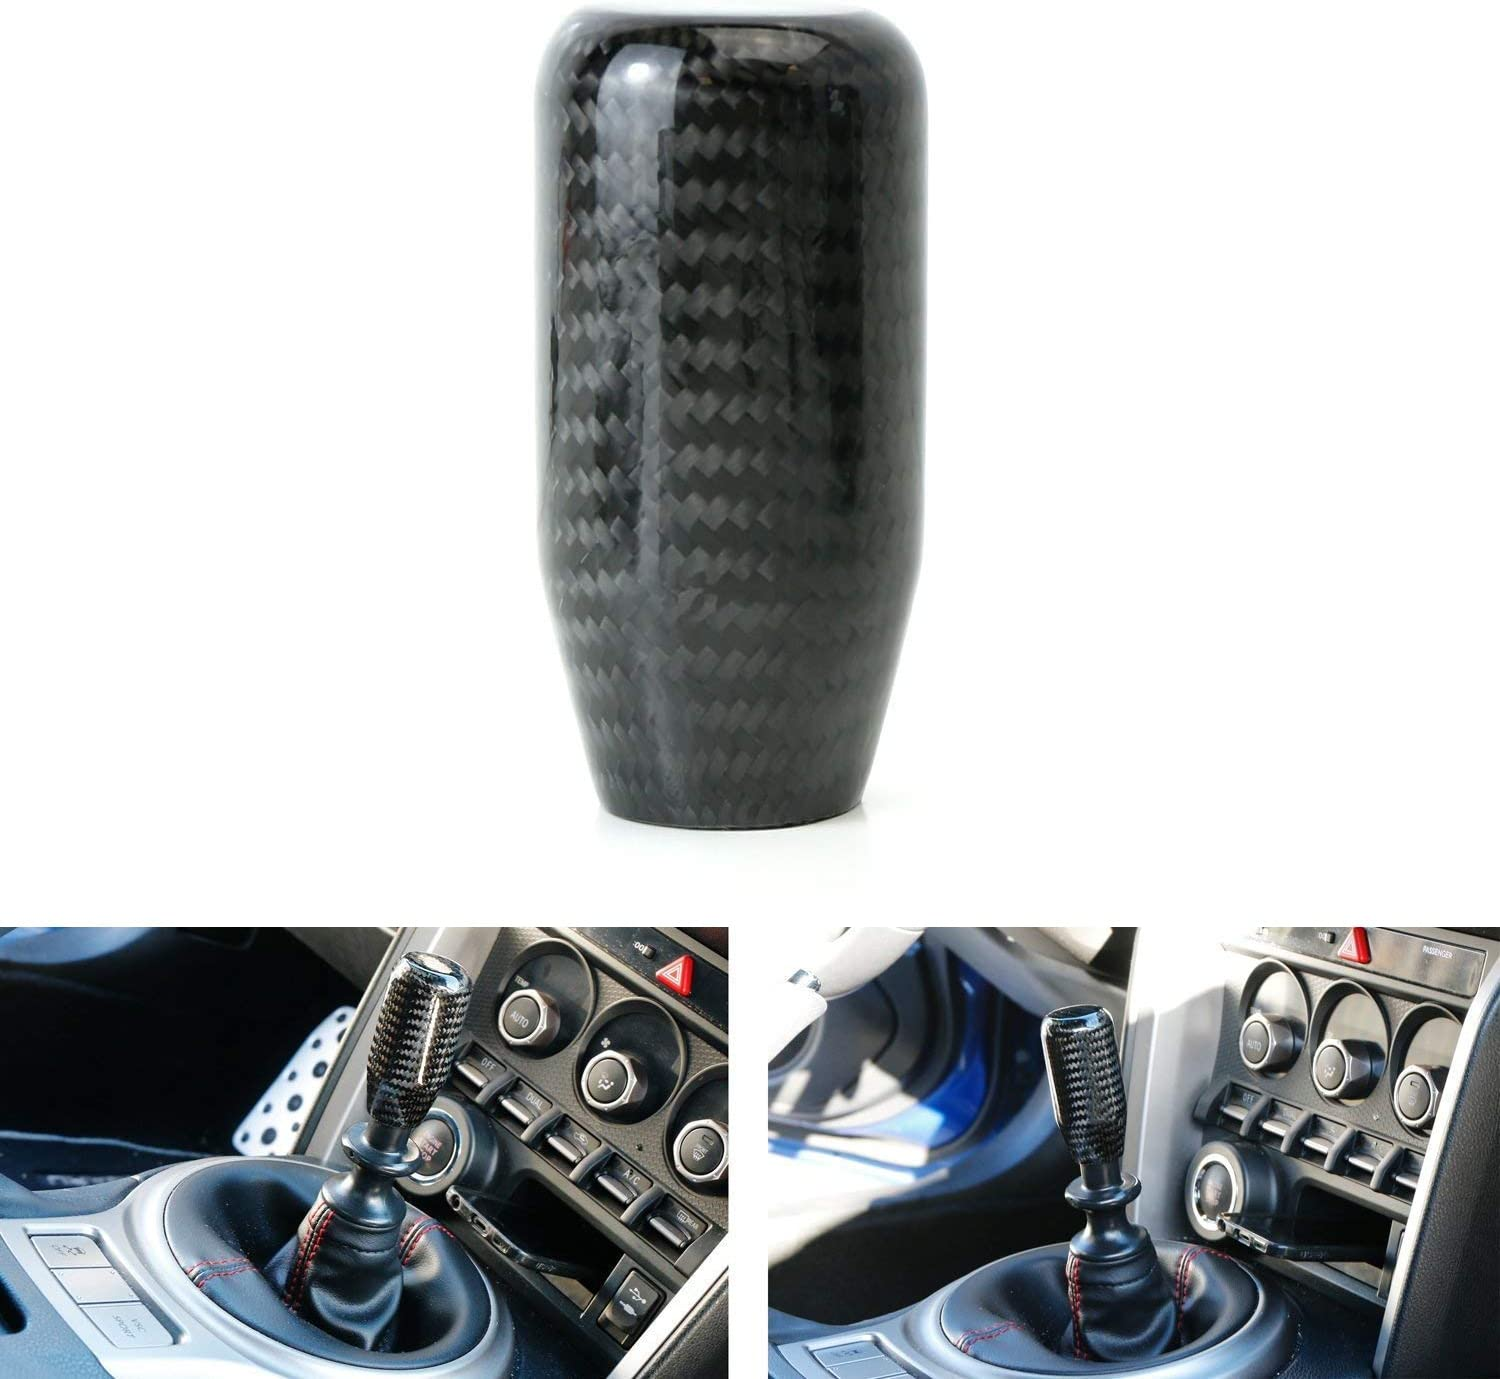 Gear Shifter Shift Knob Carbon Fiber Manual Gear Transmission Universal